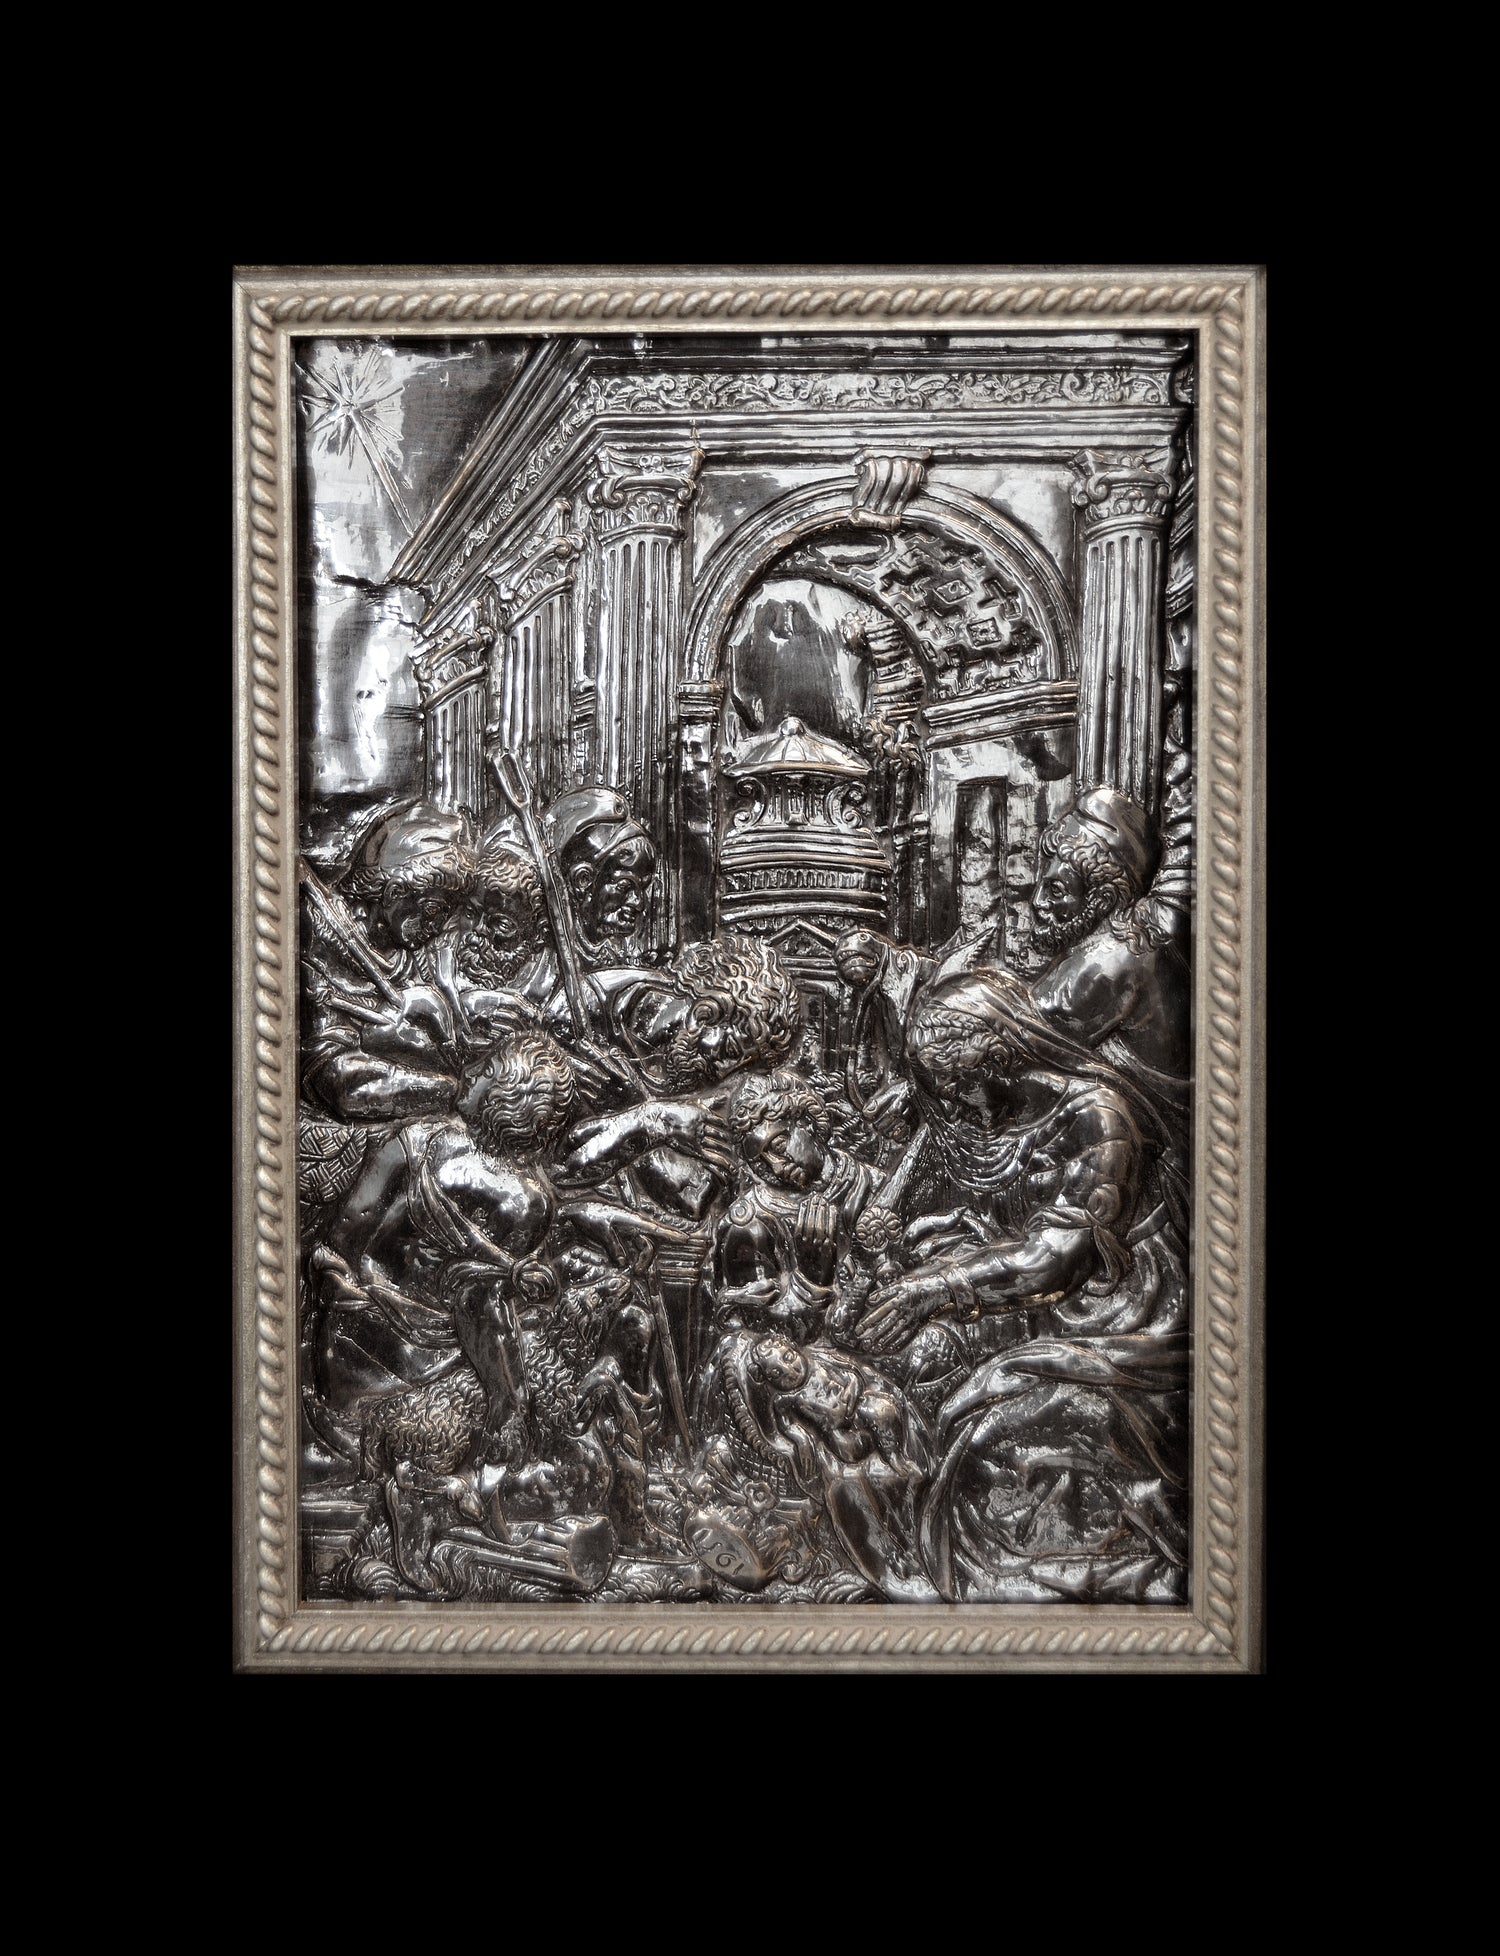 Image of A Silver Relief of the Adoration of the Shepherds attributed to Pellegrino Tibaldi, after Parmigiani